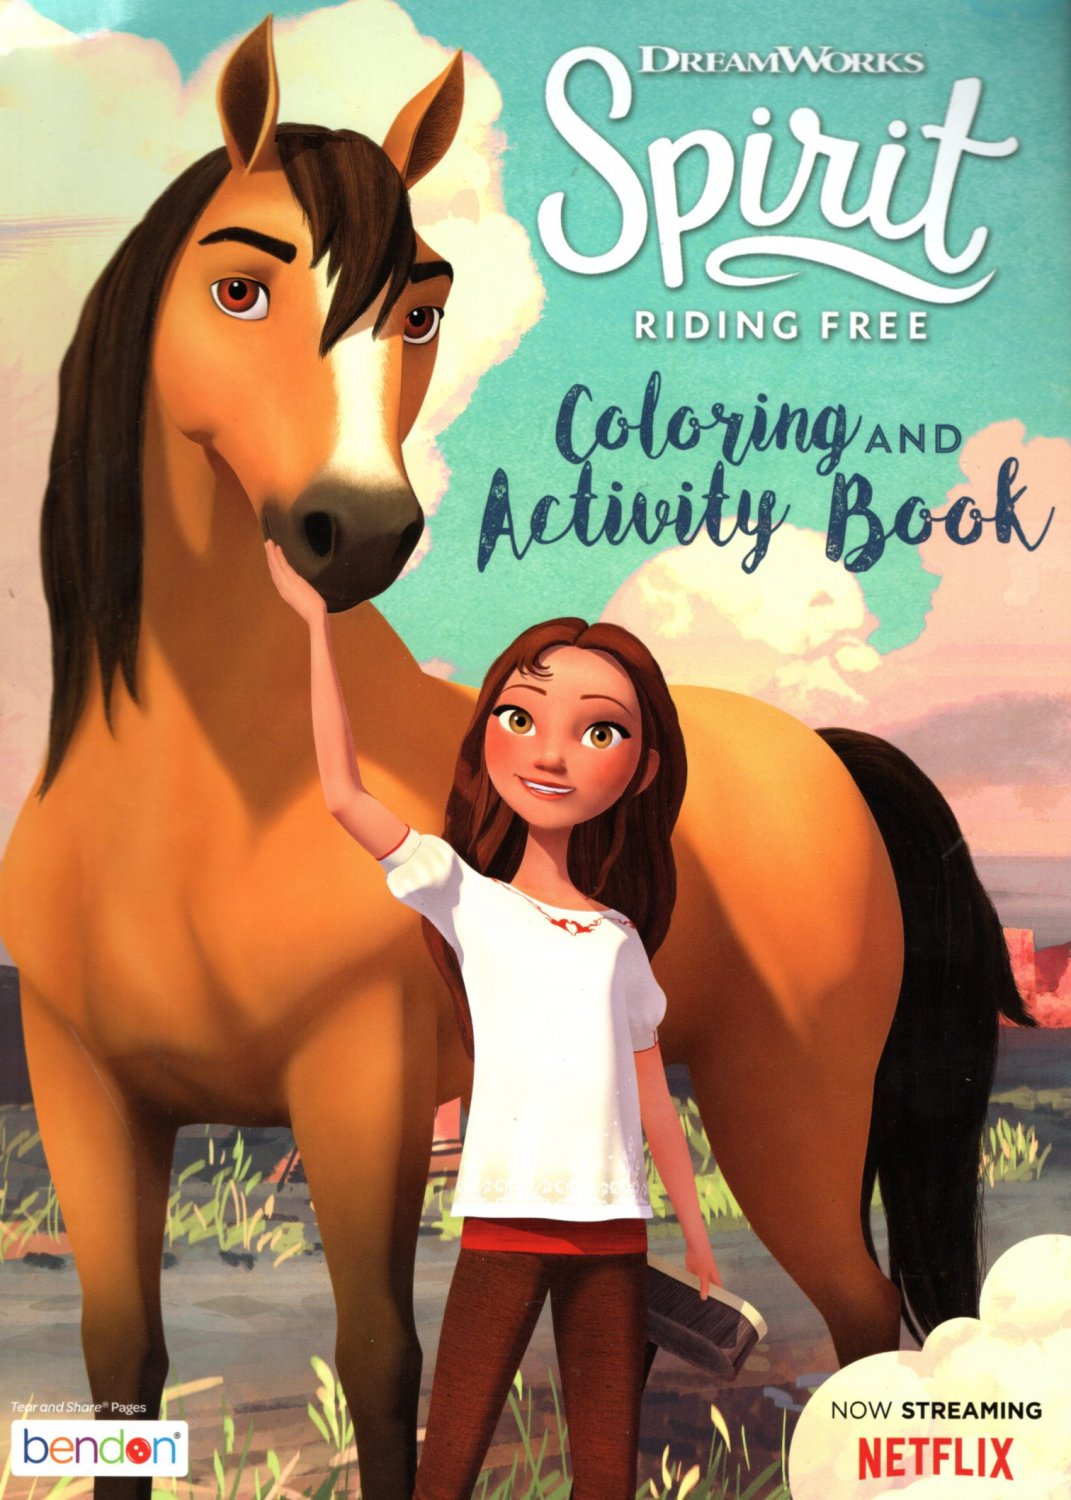 DreamWorks - Spirit Riding Free - Coloring & Activity Book